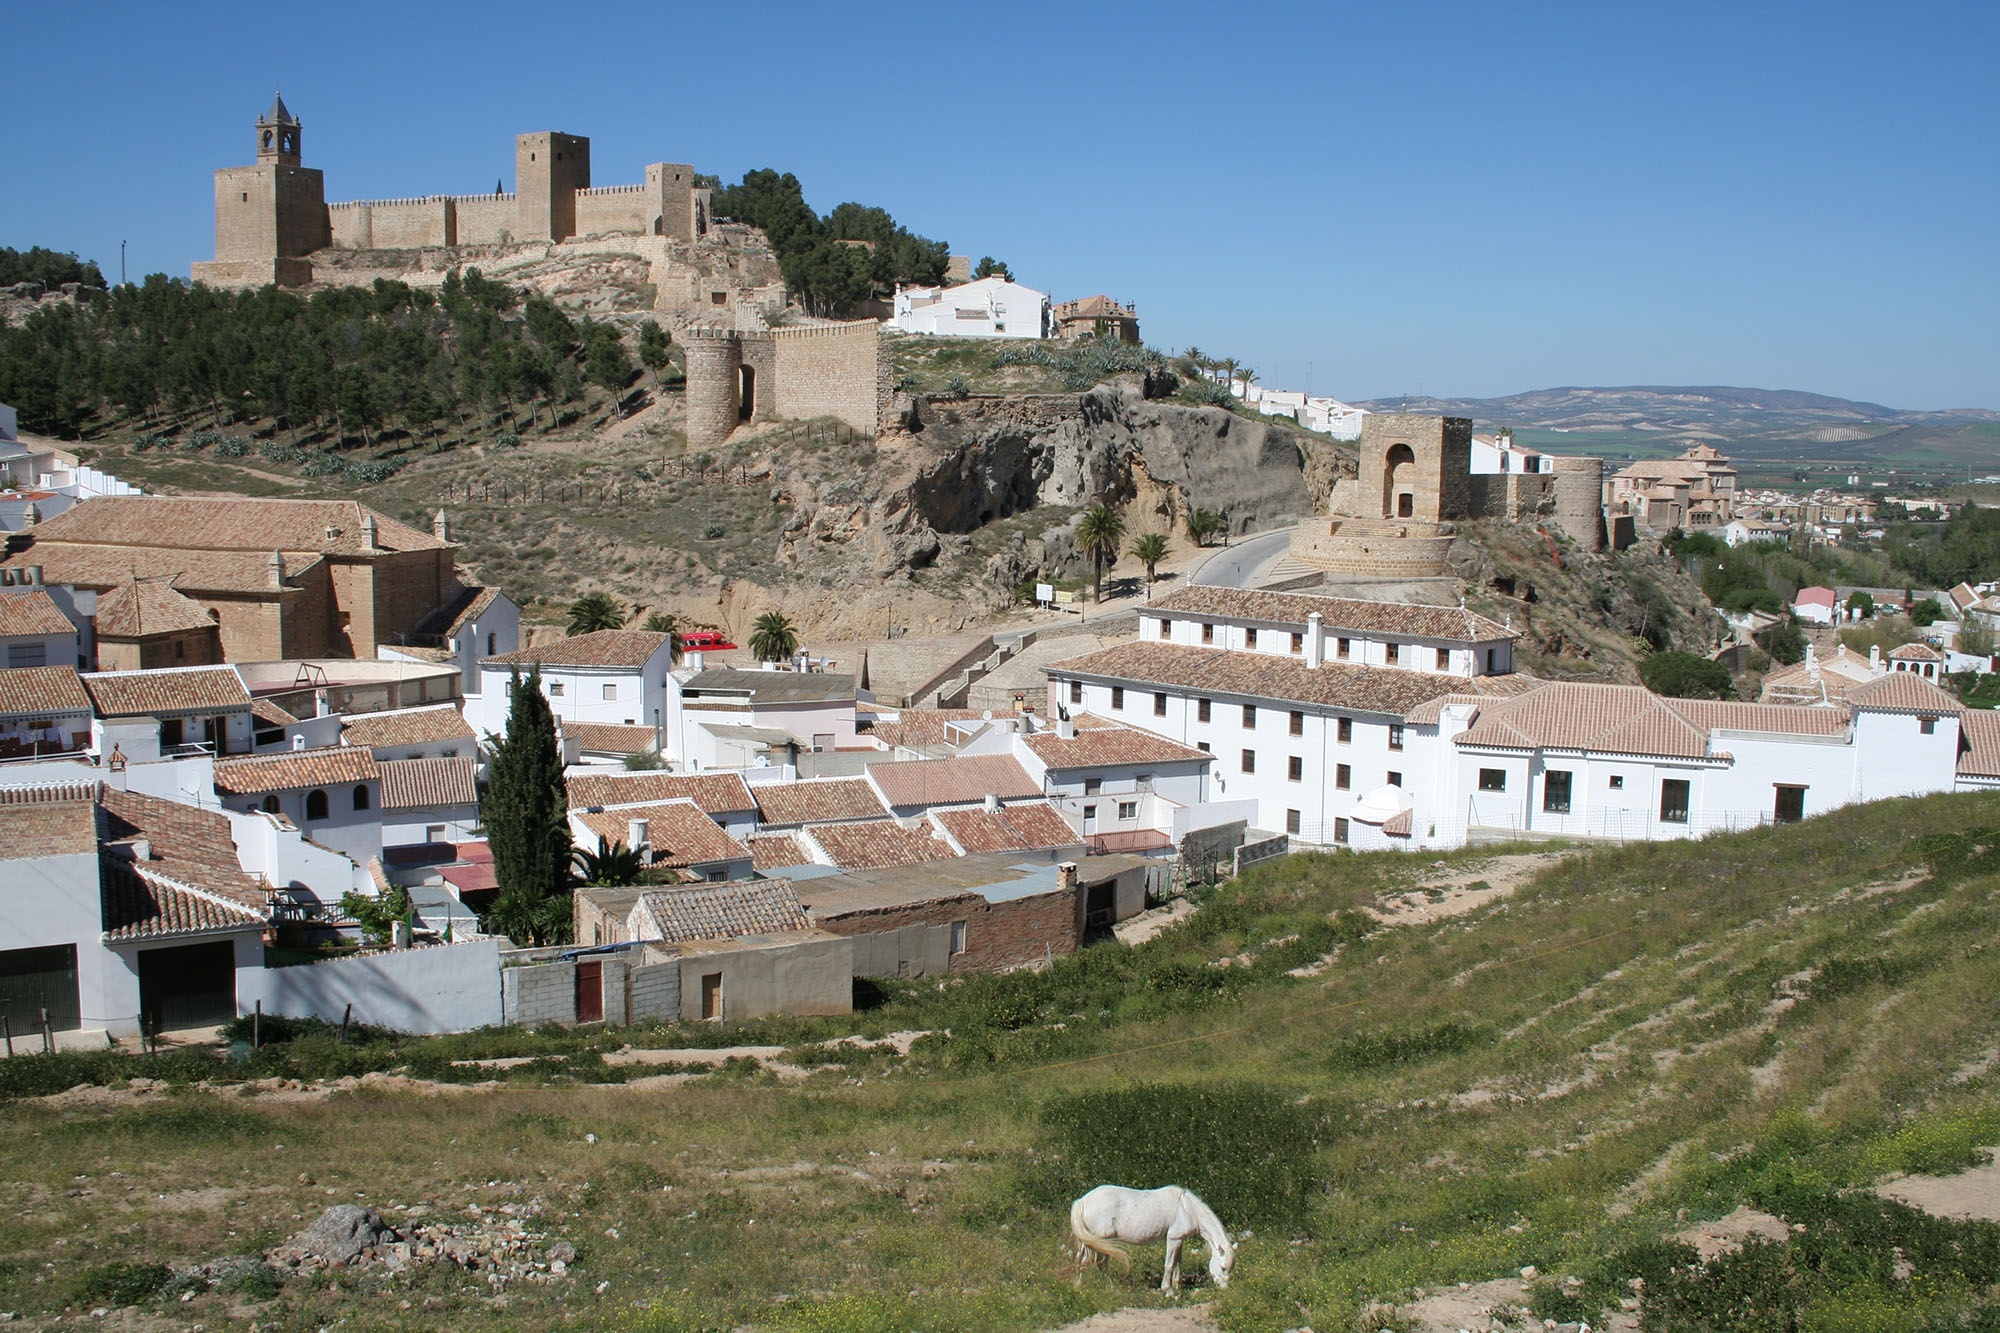 ANTEQUERA. JOURNEY TO THE CENTER OF ANDALUSIA